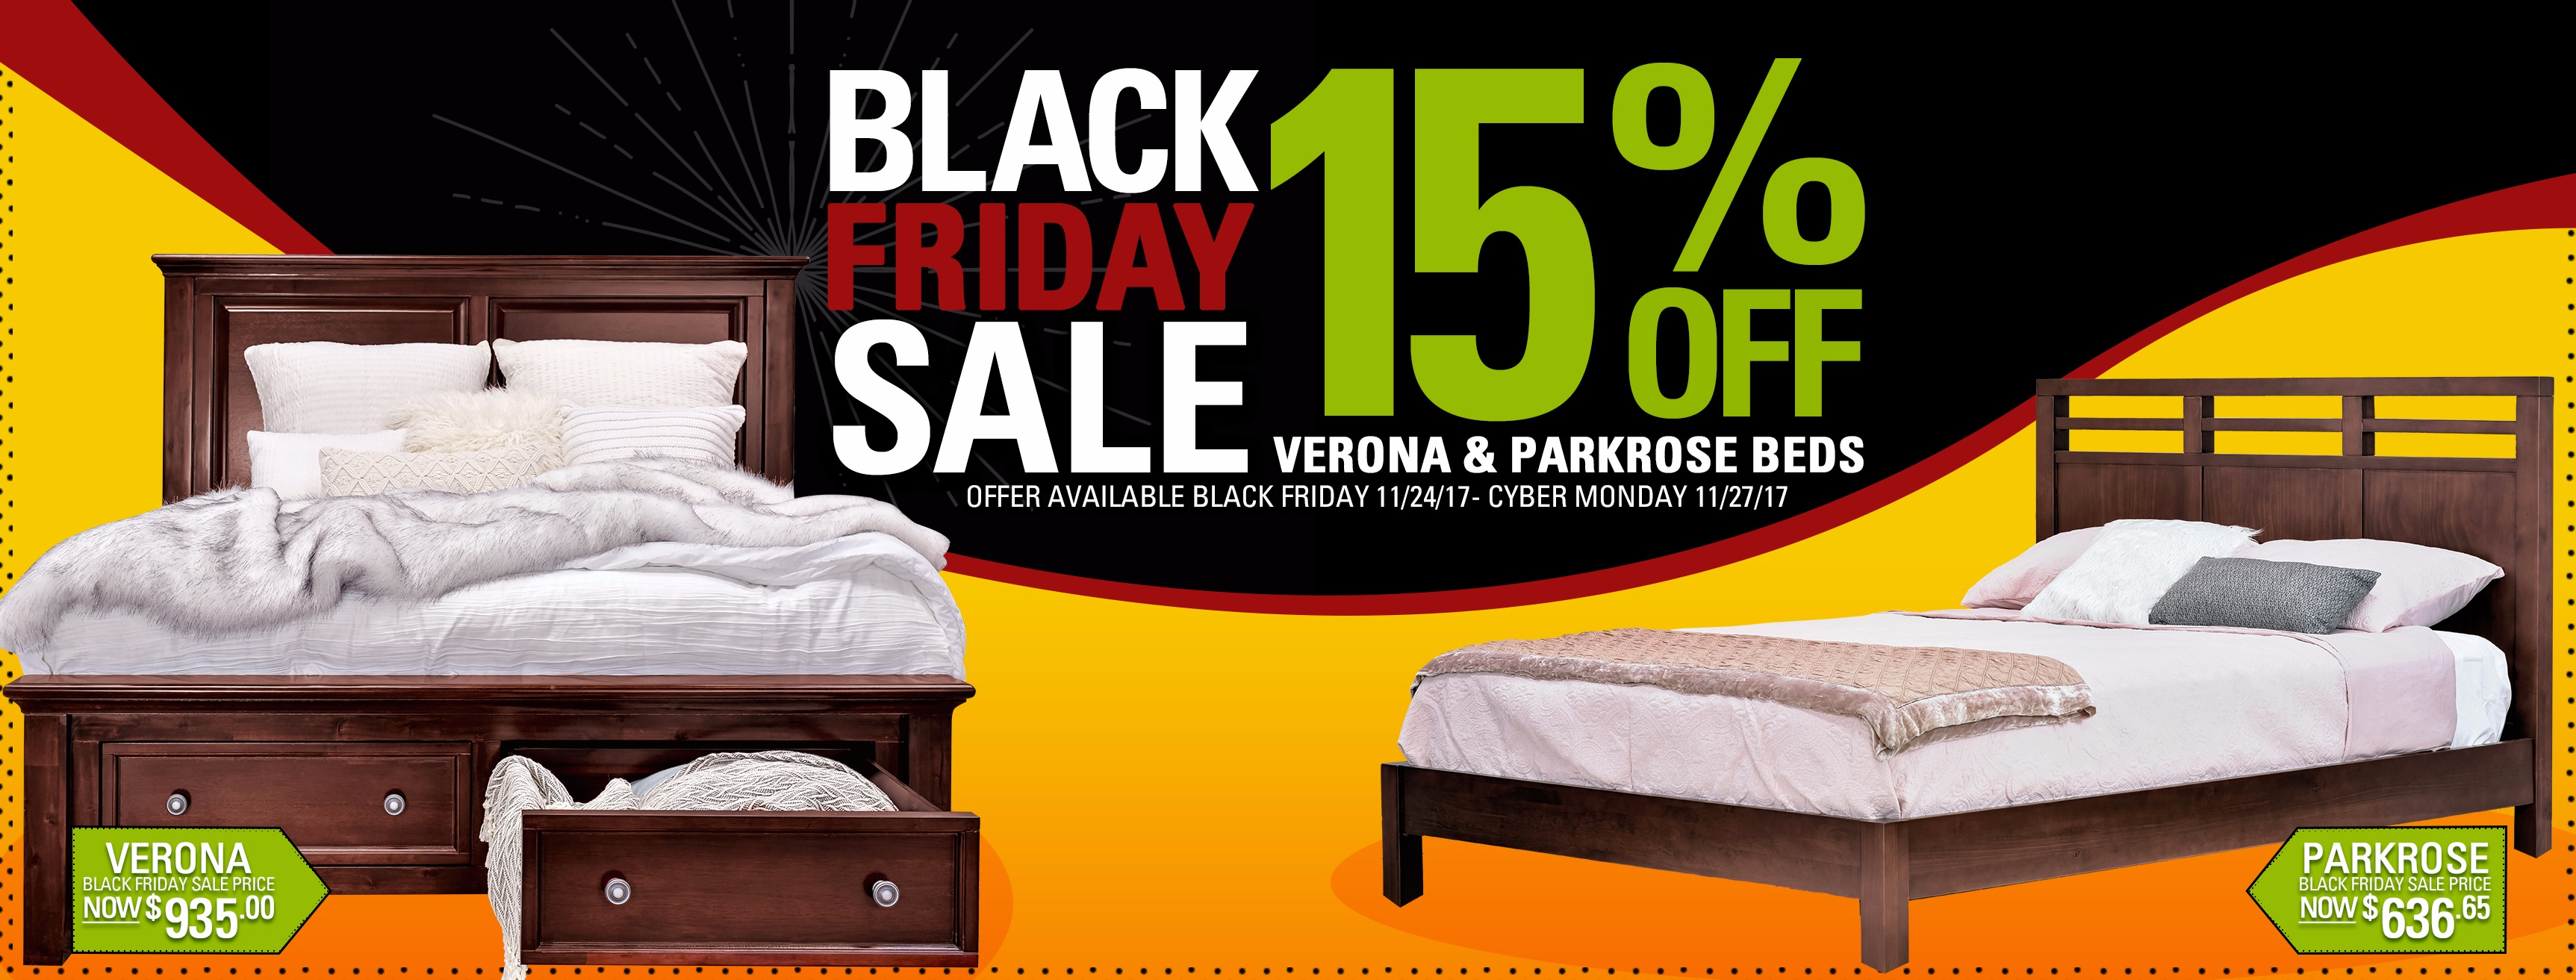 remember to make your purchase by 11 59pm on cyber monday because the sale ends at midnight  black friday cyber monday sale   save 15  off selected beds      rh   epochbydesign